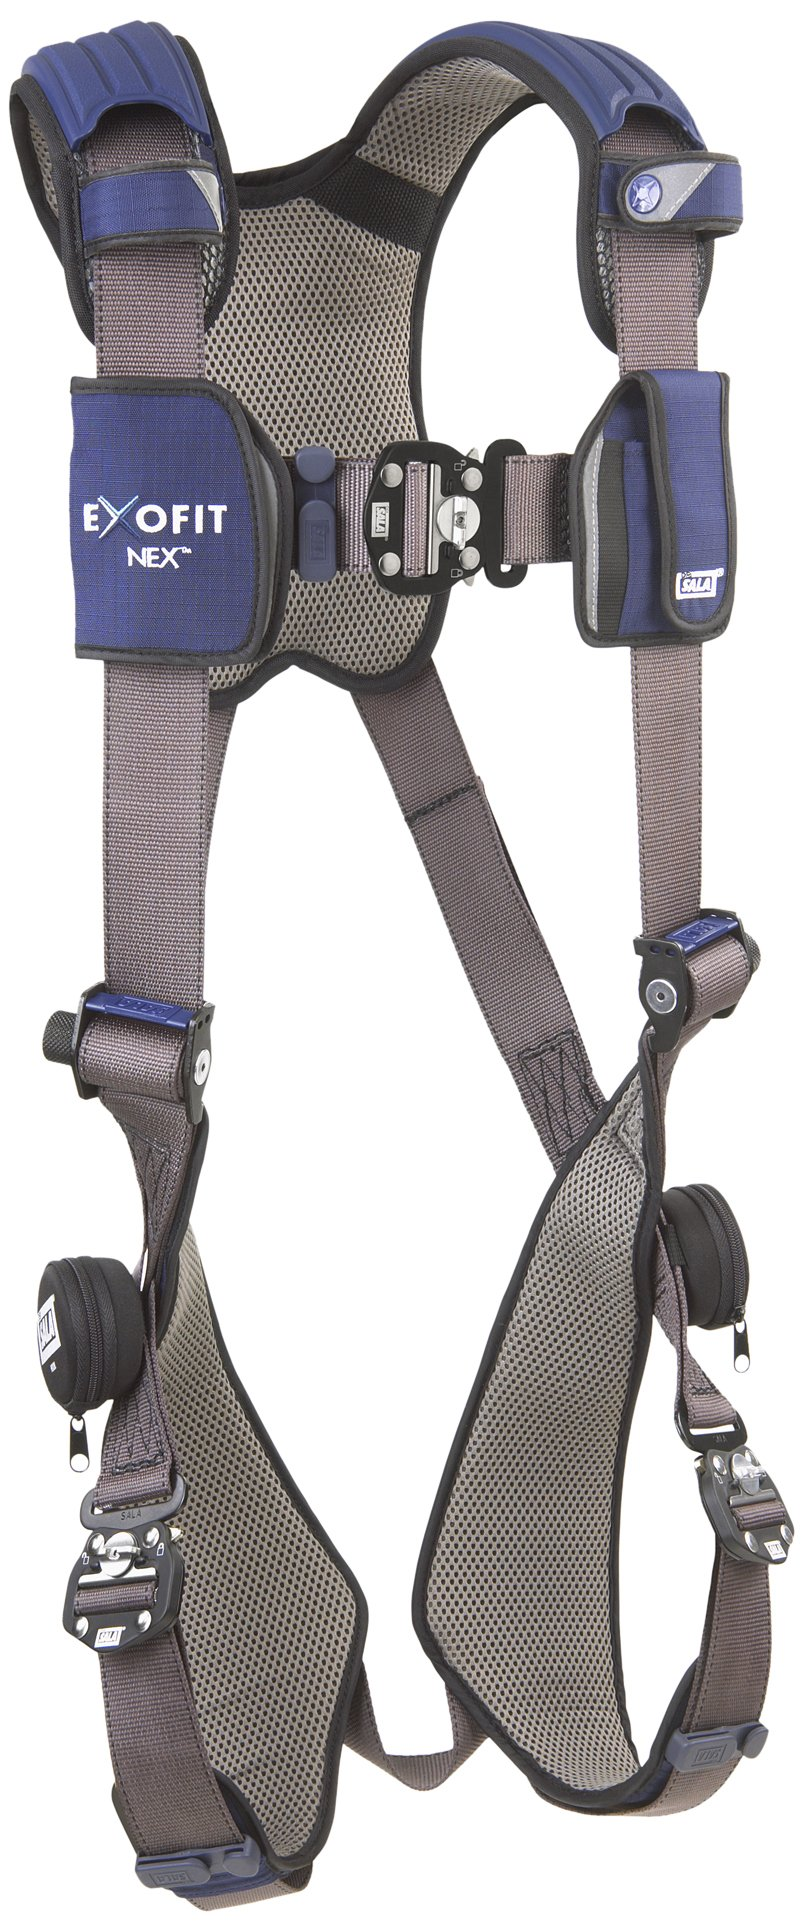 3M DBI-SALA ExoFit NEX 1113001 Vest Style Harness, Aluminum Back D-Ring, Locking Quick Connect Buckles, Small, Blue/Gray